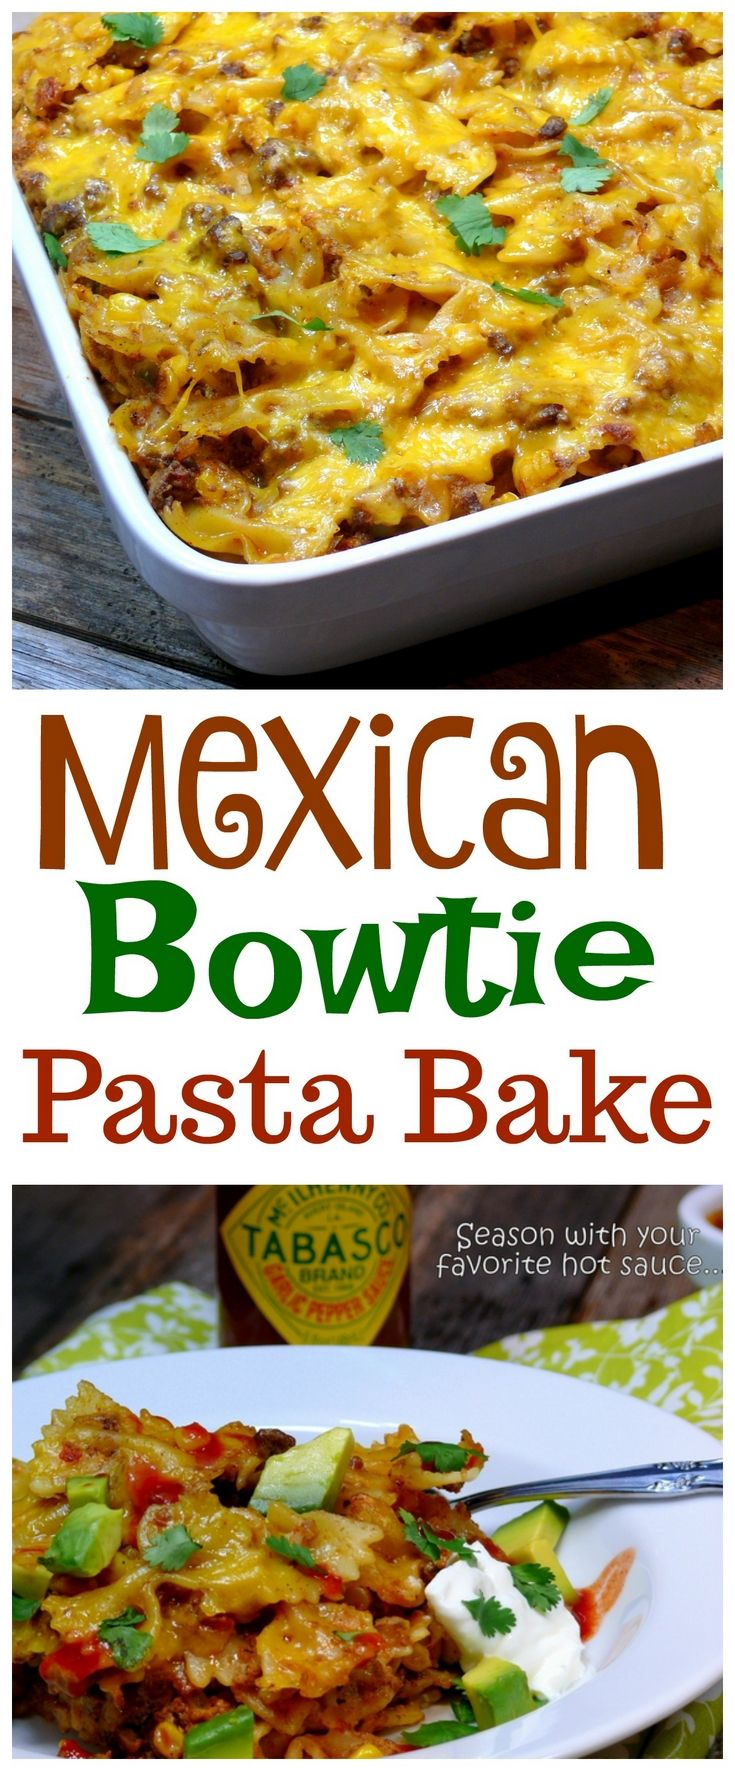 VIDEO  Recipe Garnish this MEXICAN BOWTIE PASTA BAKE with fresh avocado sour cream cilantro and a favorite hot sauce Makes for great leftovers too from